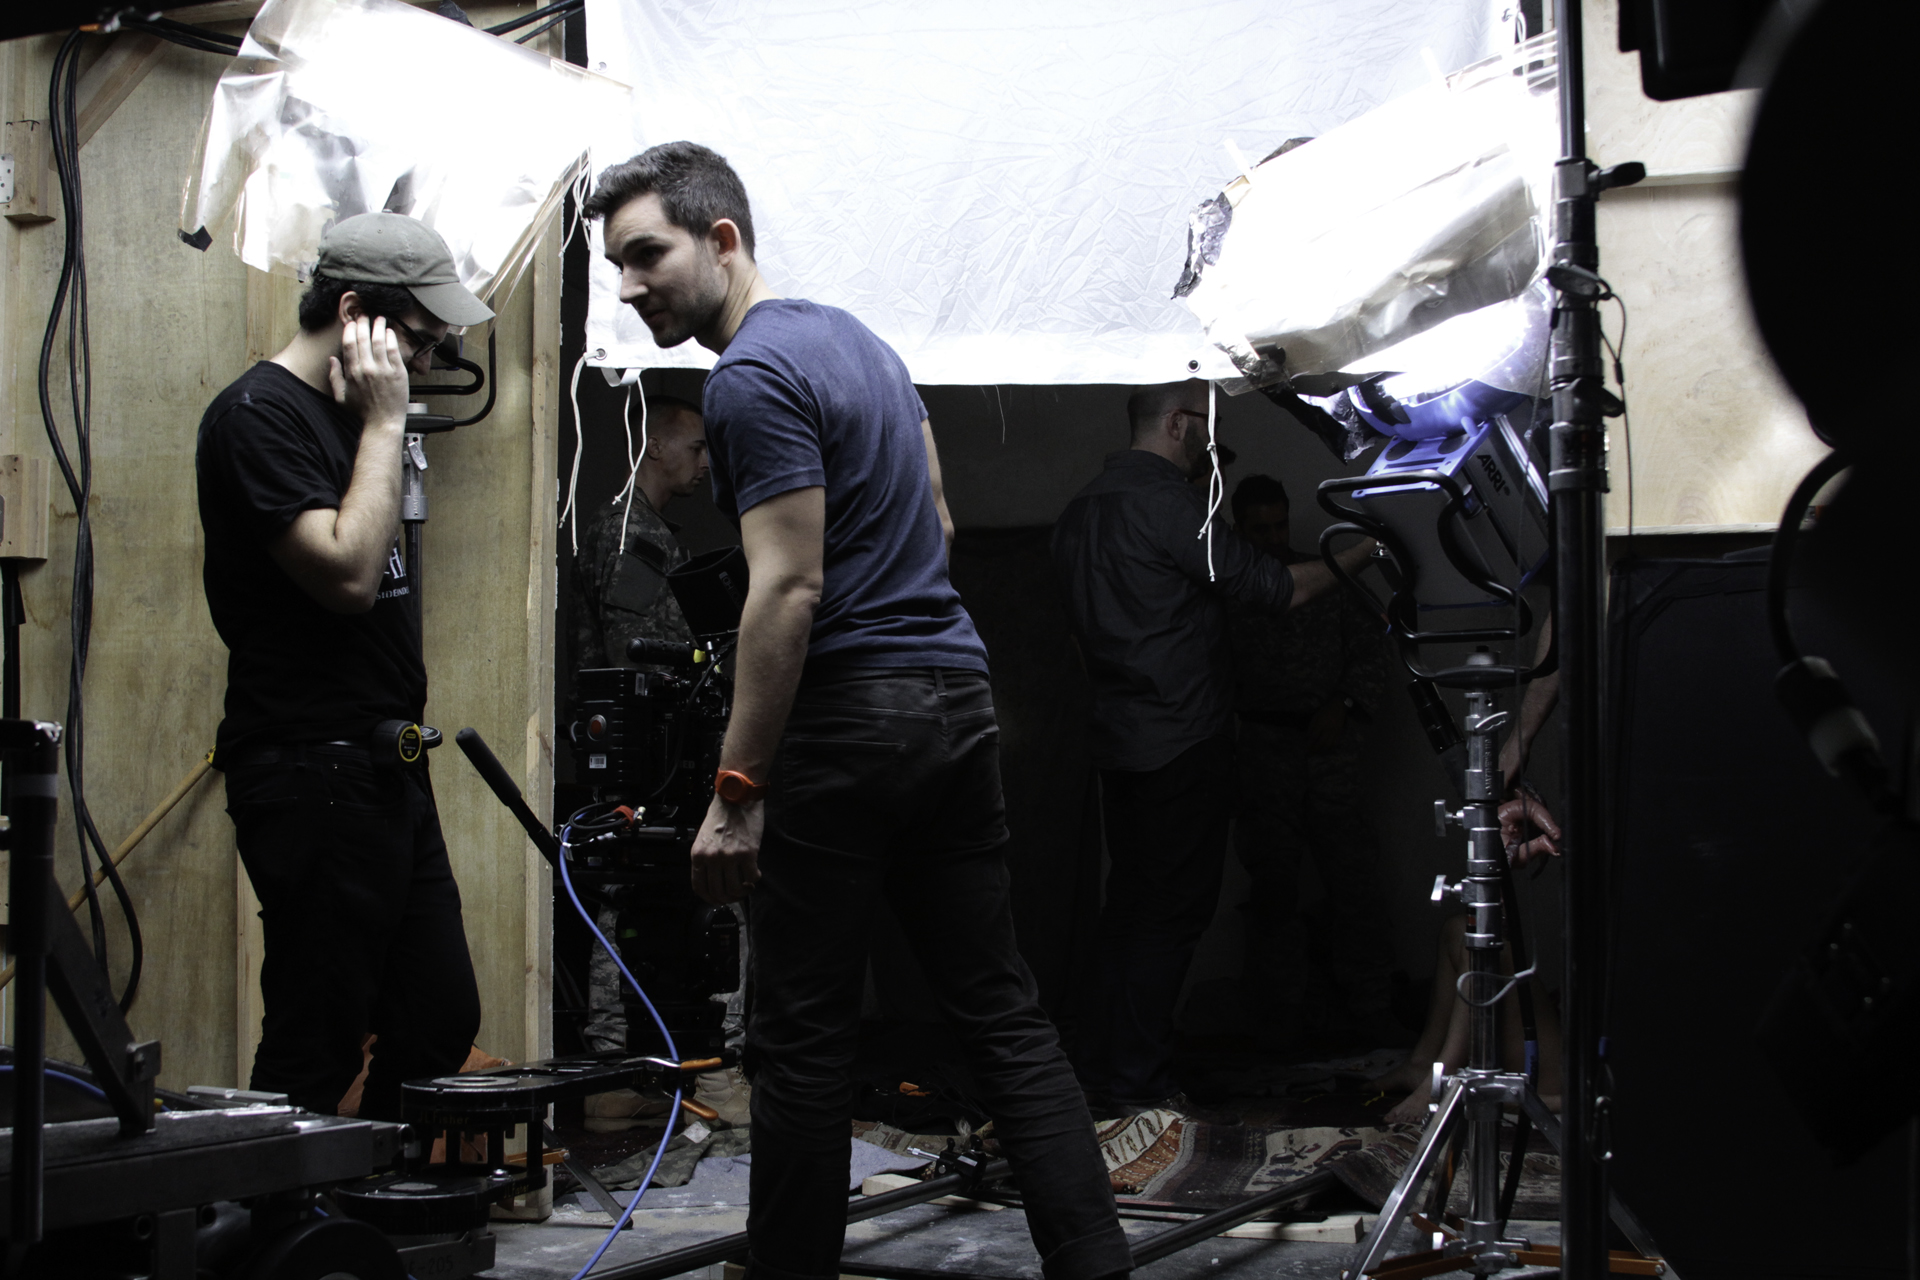 Director of Photography Laurence Vannicelli gives the crew lighting adjustment notes.